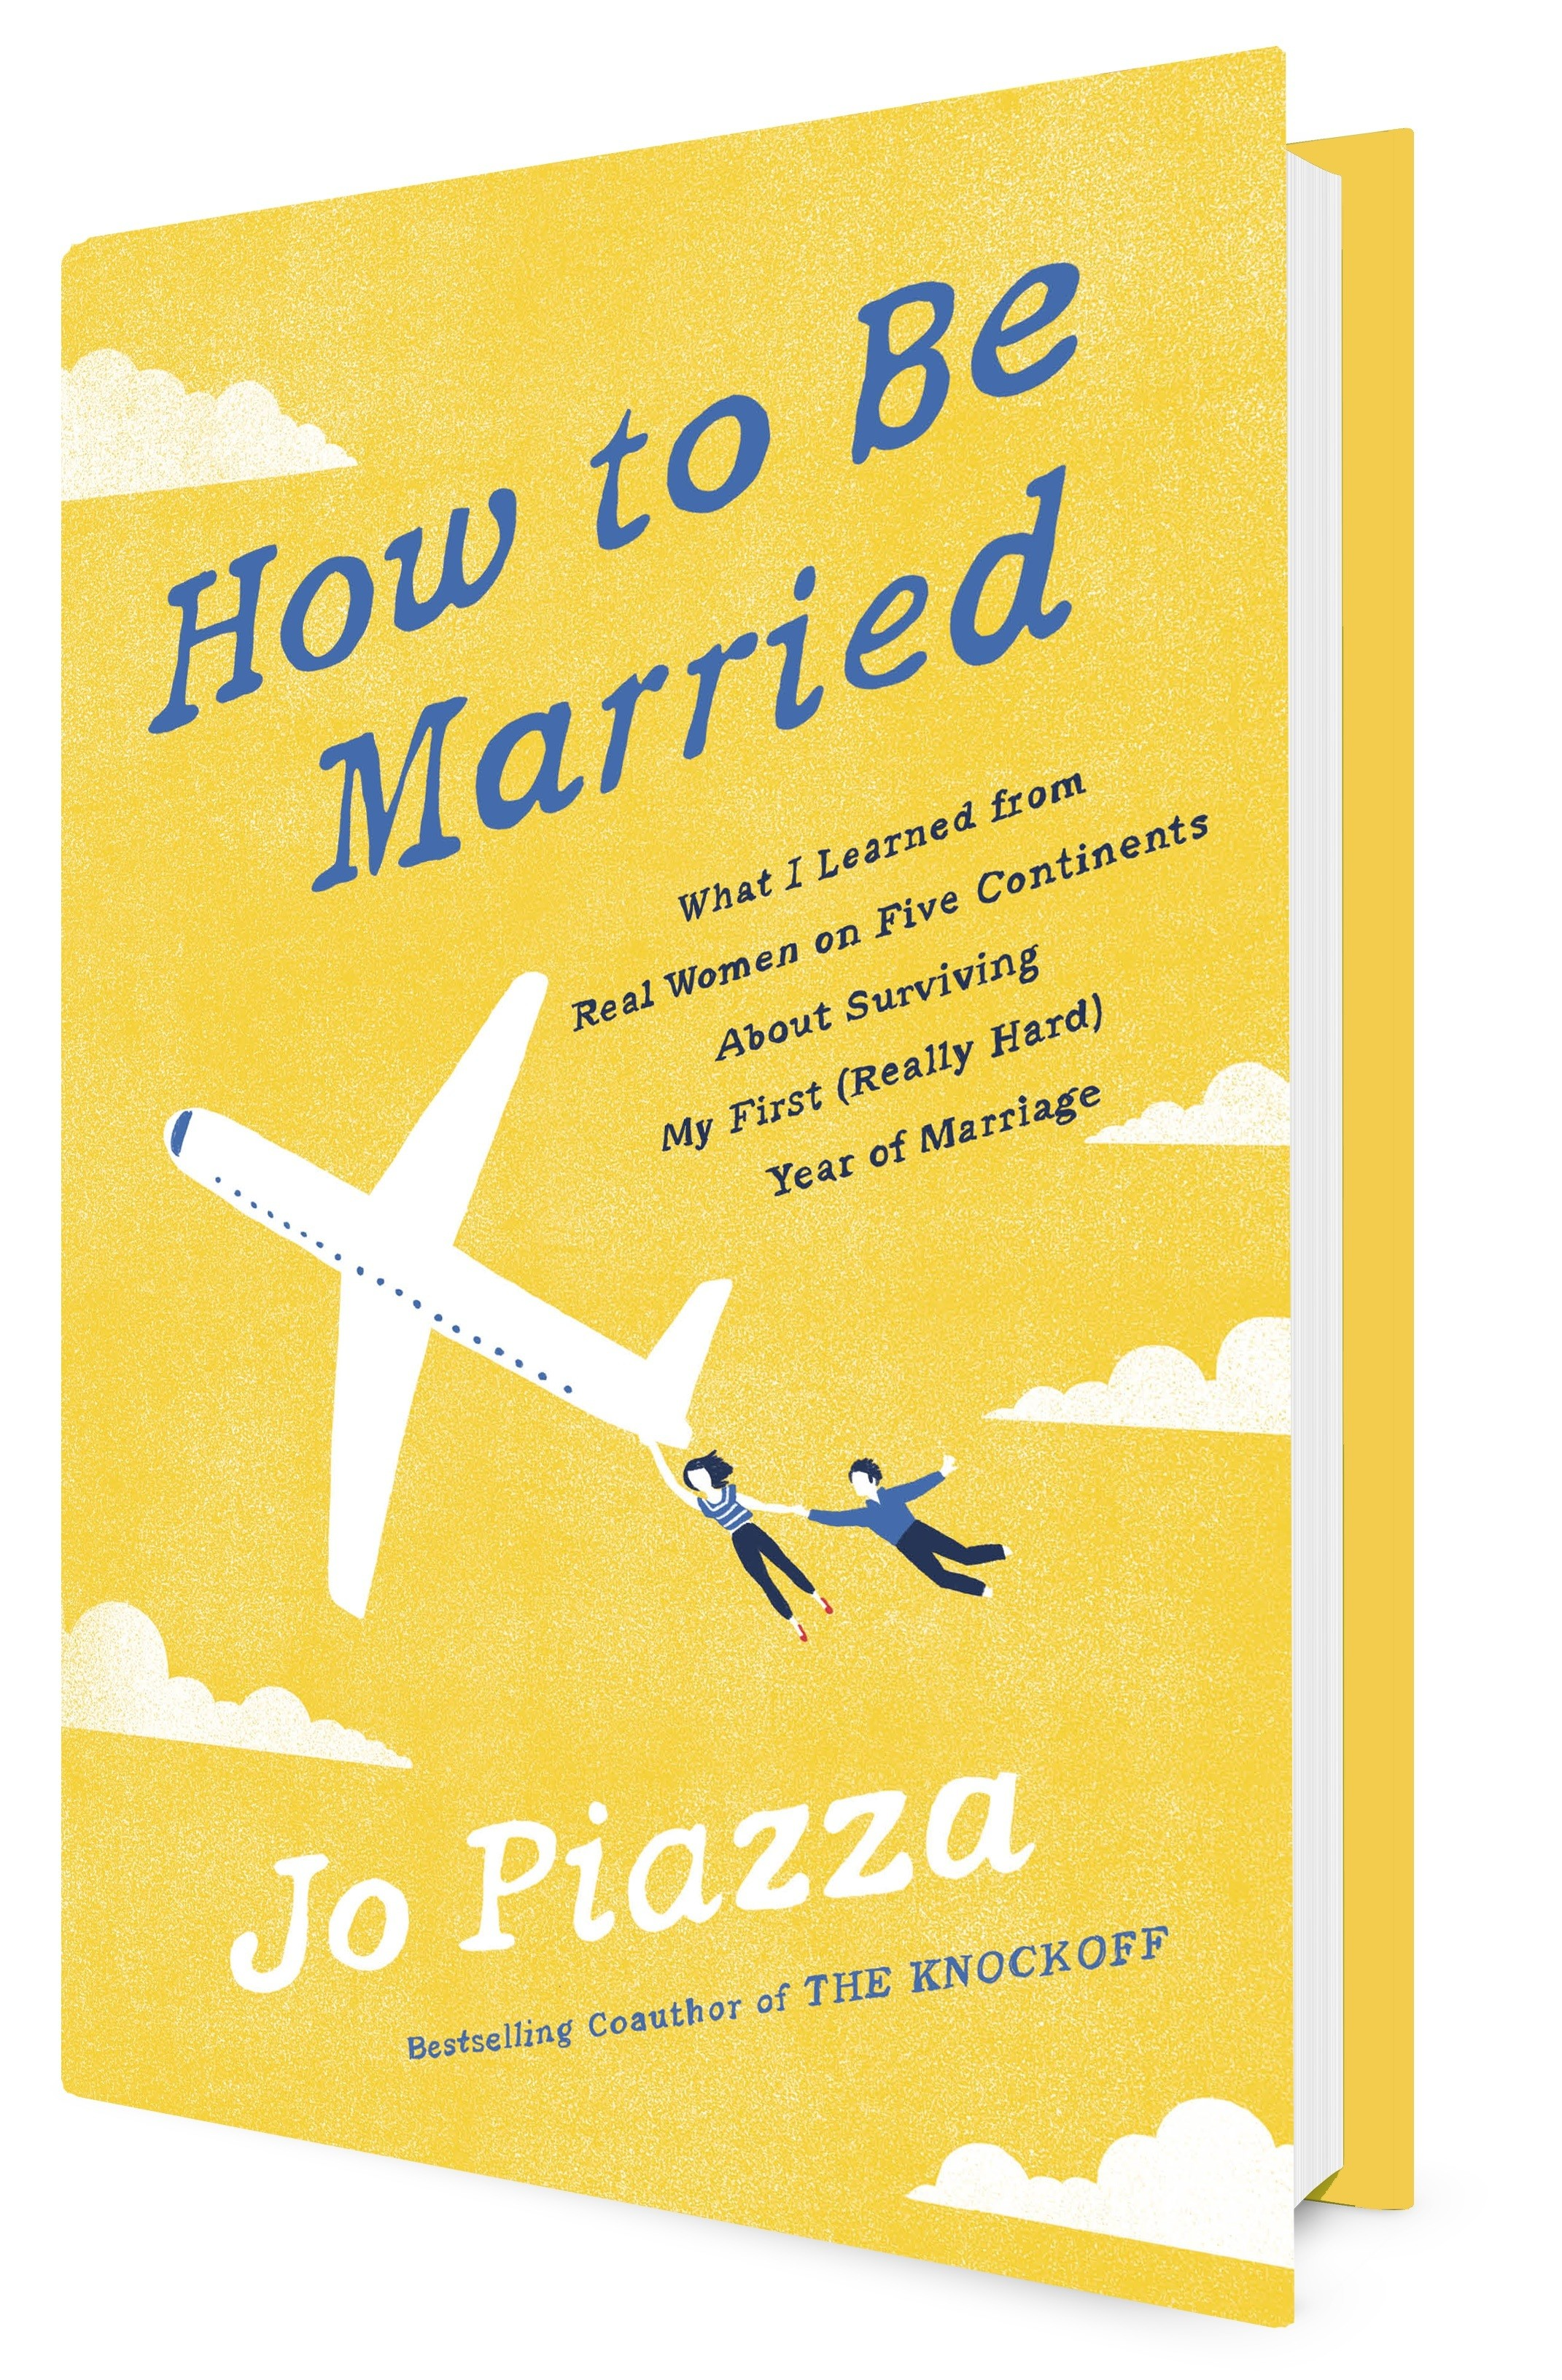 Inspiring Women: Meet the Author Who Crowdsourced Marriage Advice From Around the World